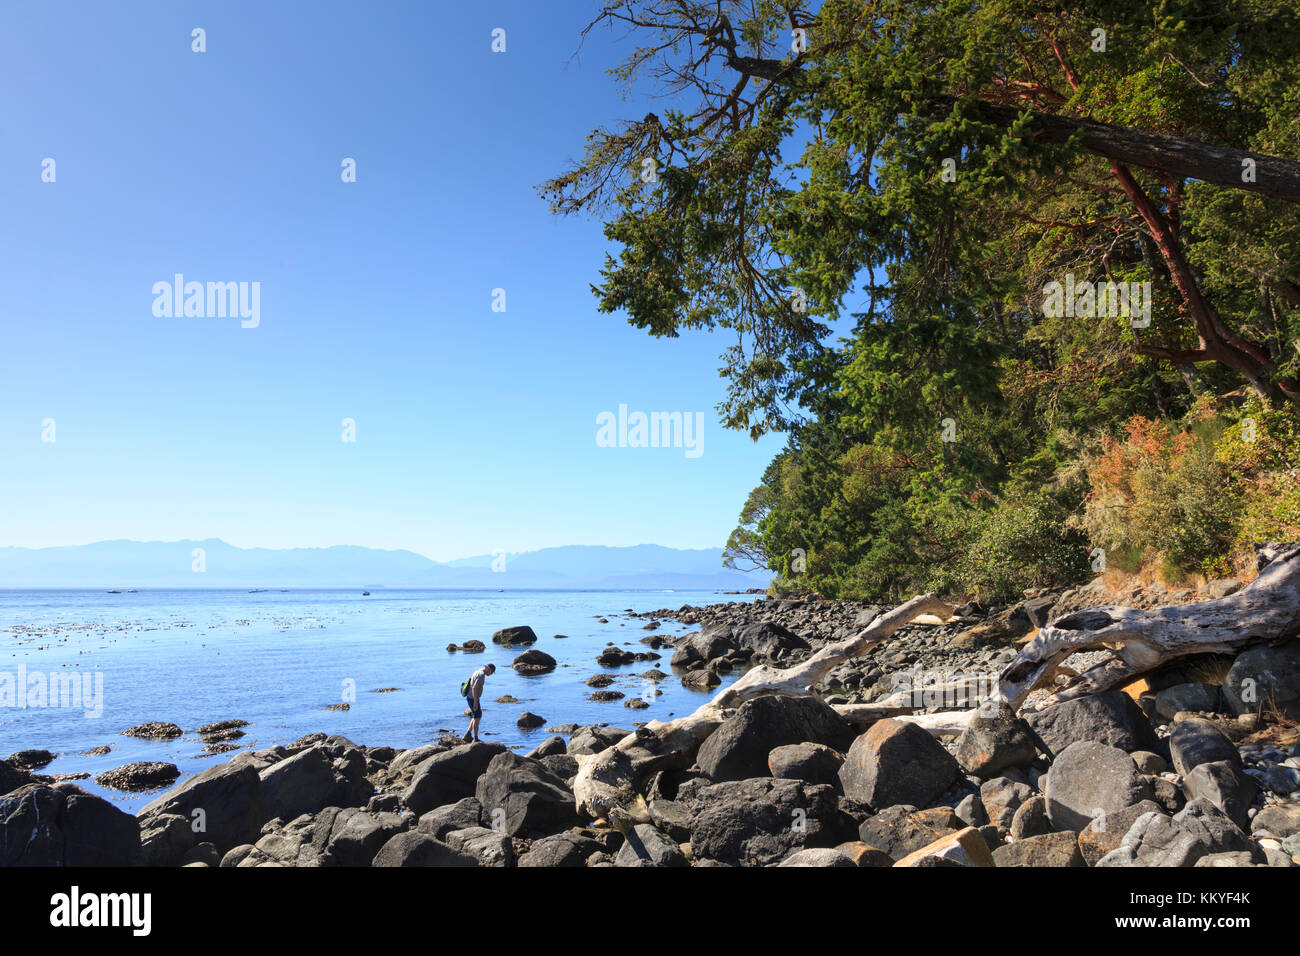 East Sooke Regional Park and The Strait of Juan de Fuca,  Sooke, Vancouver Island, British Columbia, Cananda - Stock Image